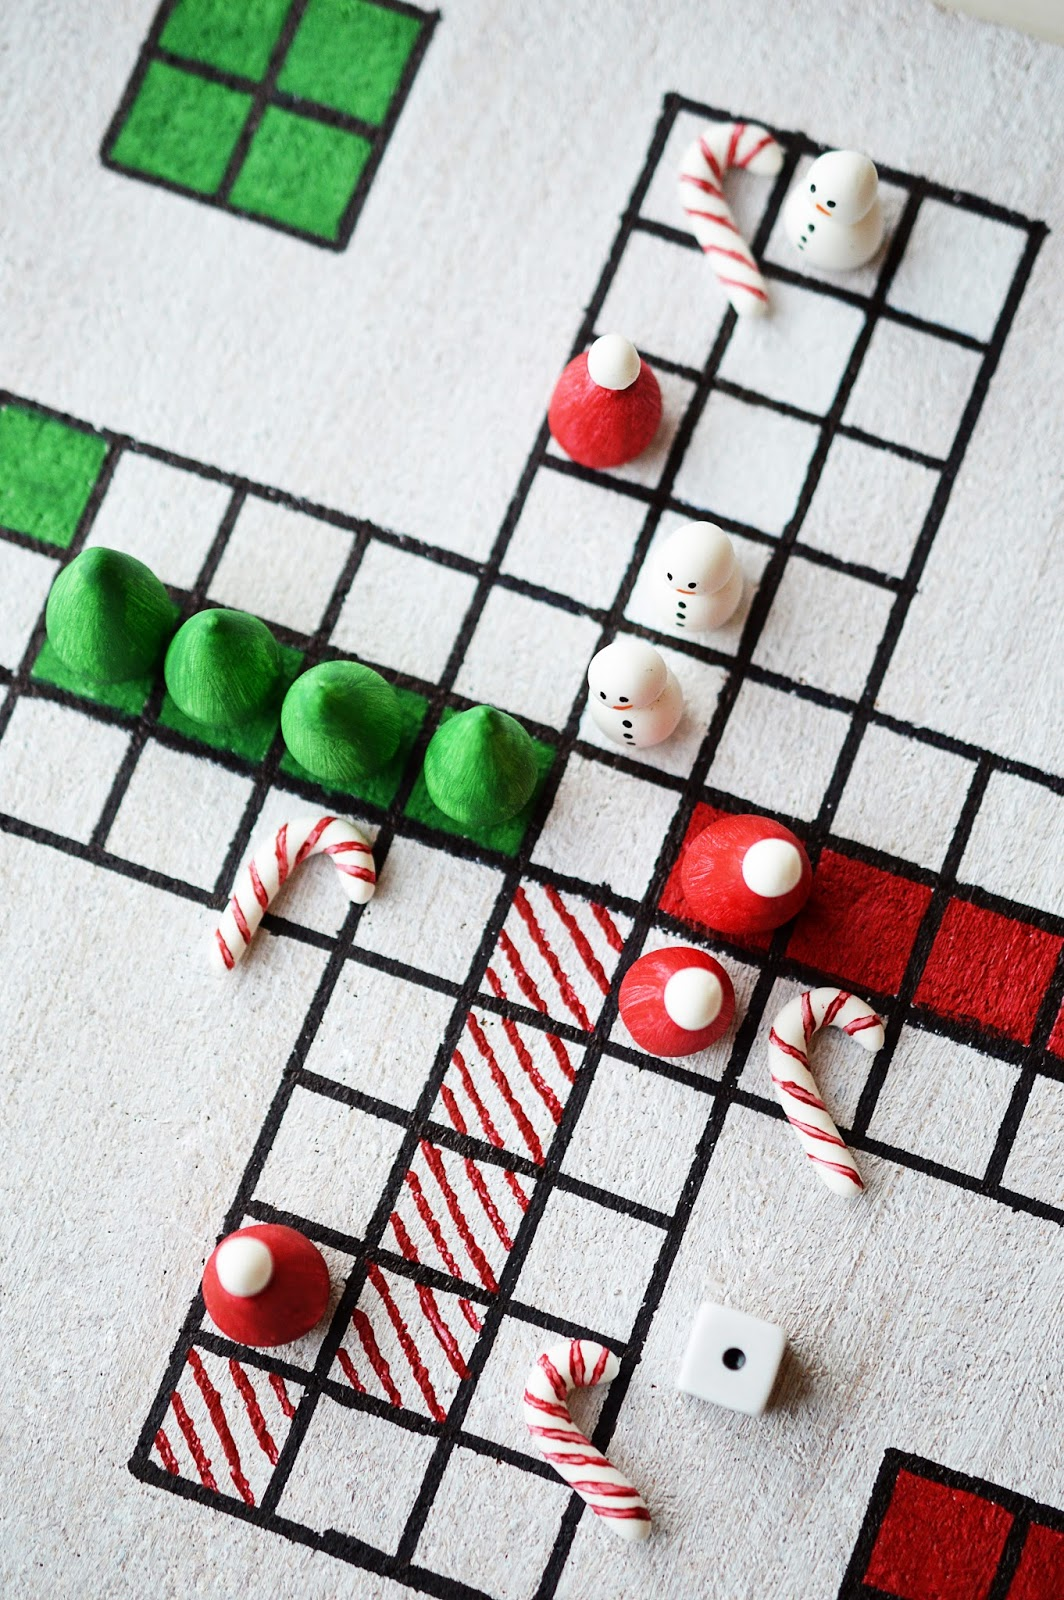 Christmas Party Contest Ideas Part - 41: 27 Fun Christmas Games To Play With The Family - Homemade Christmas Party  Games